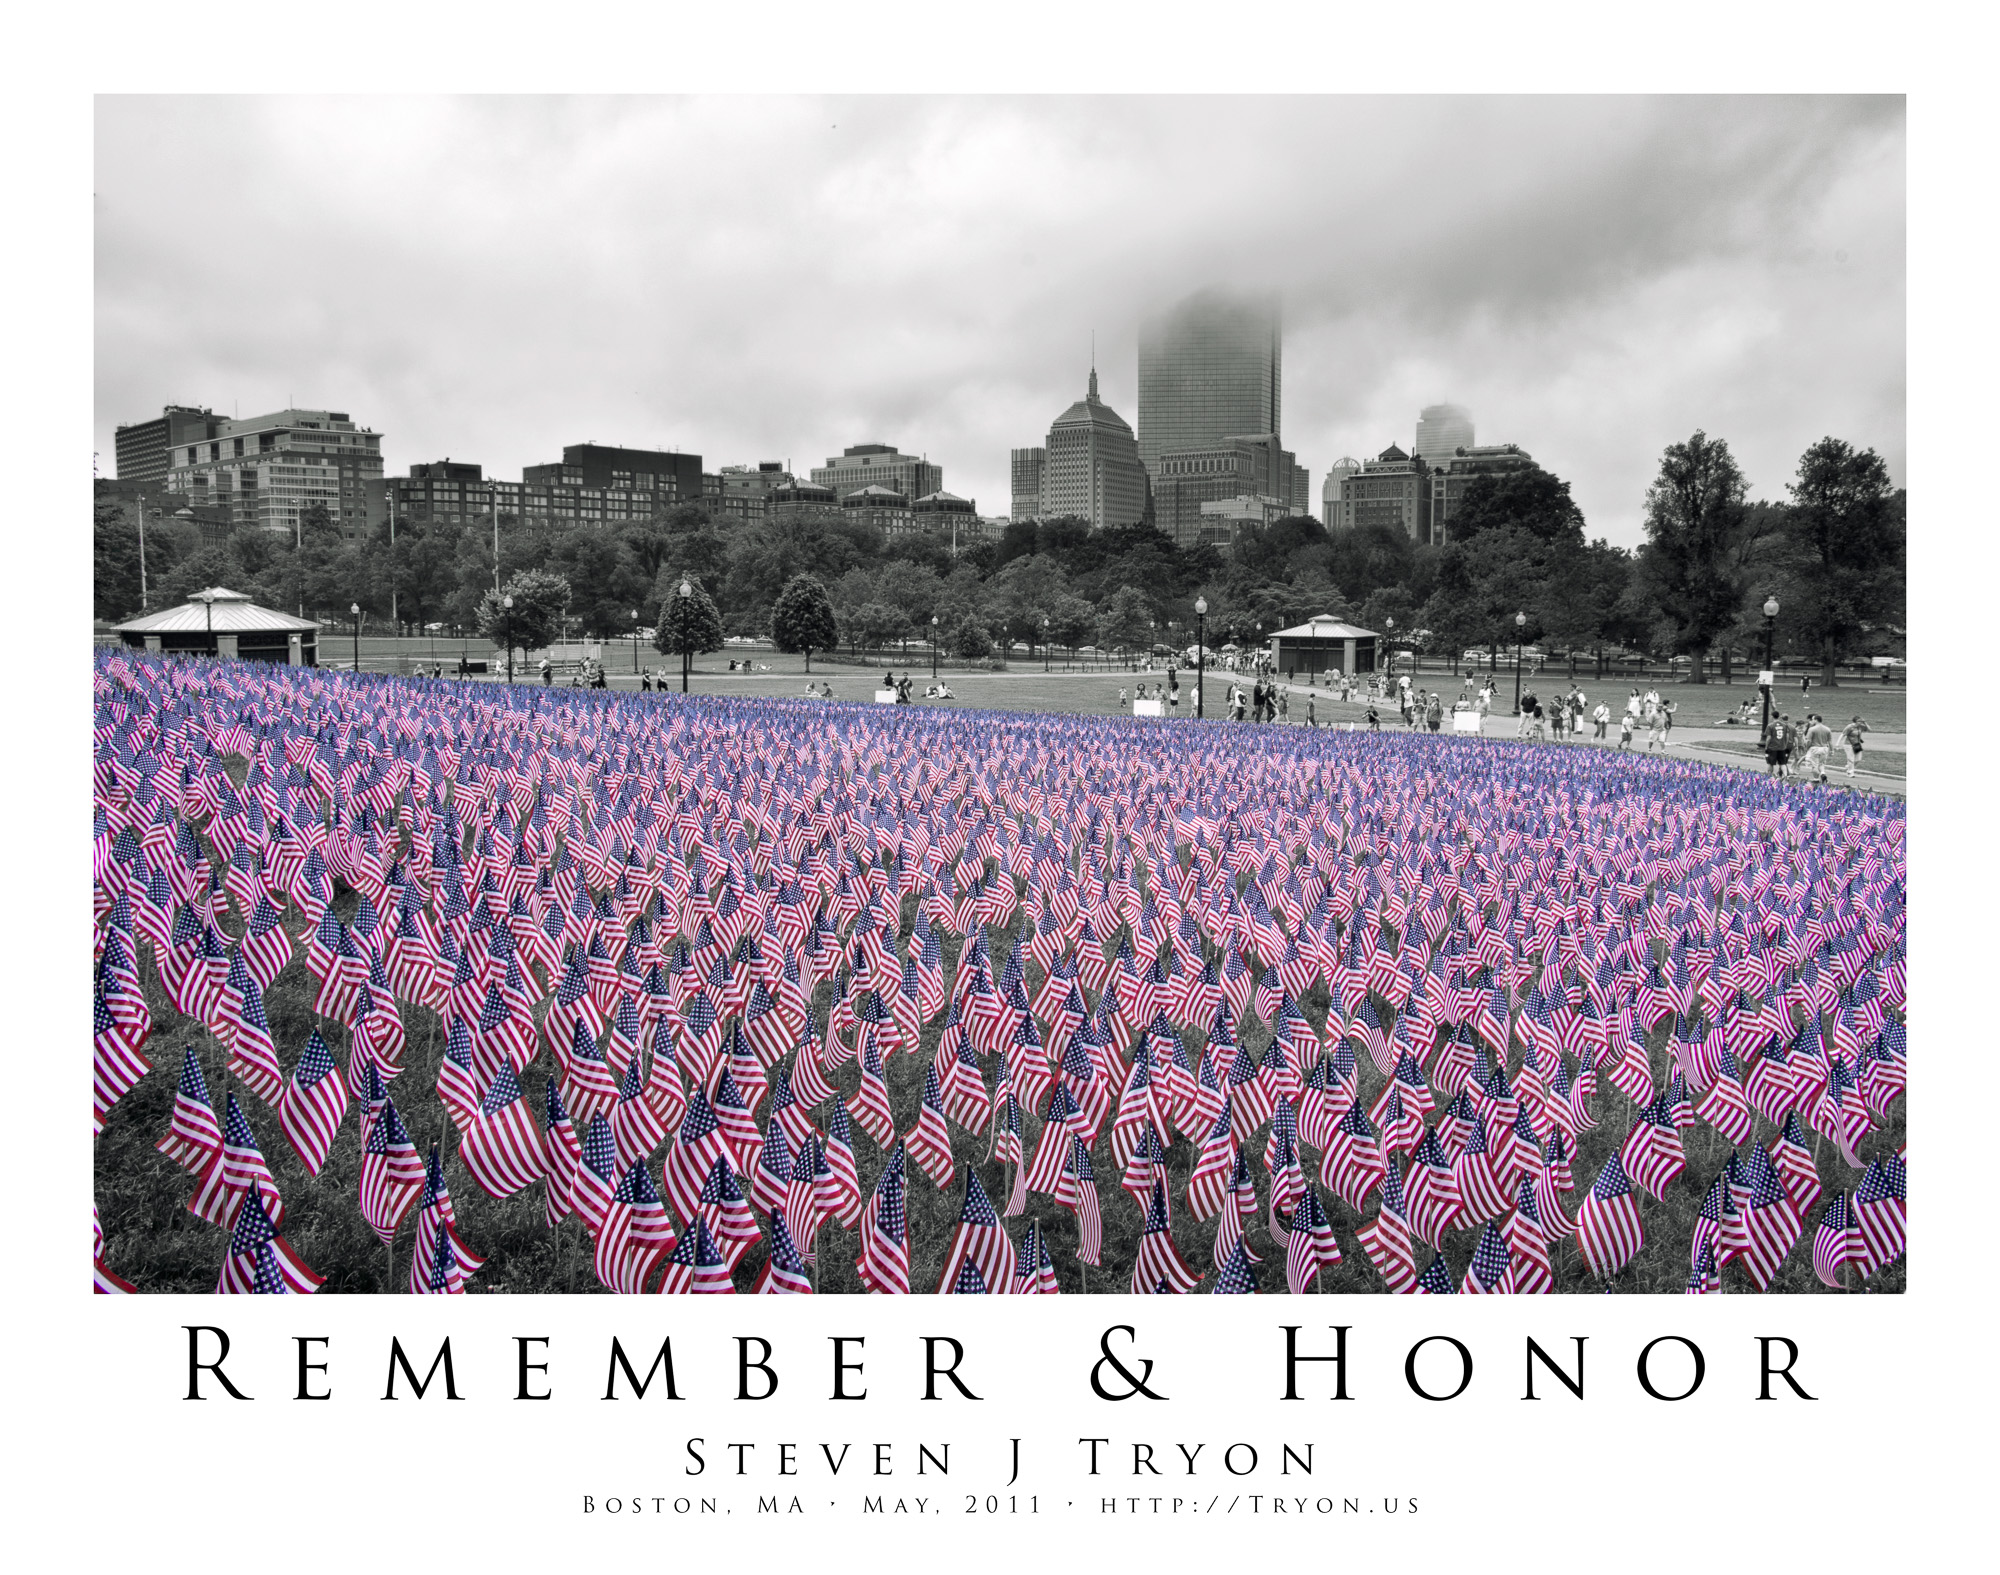 Remember & Honor